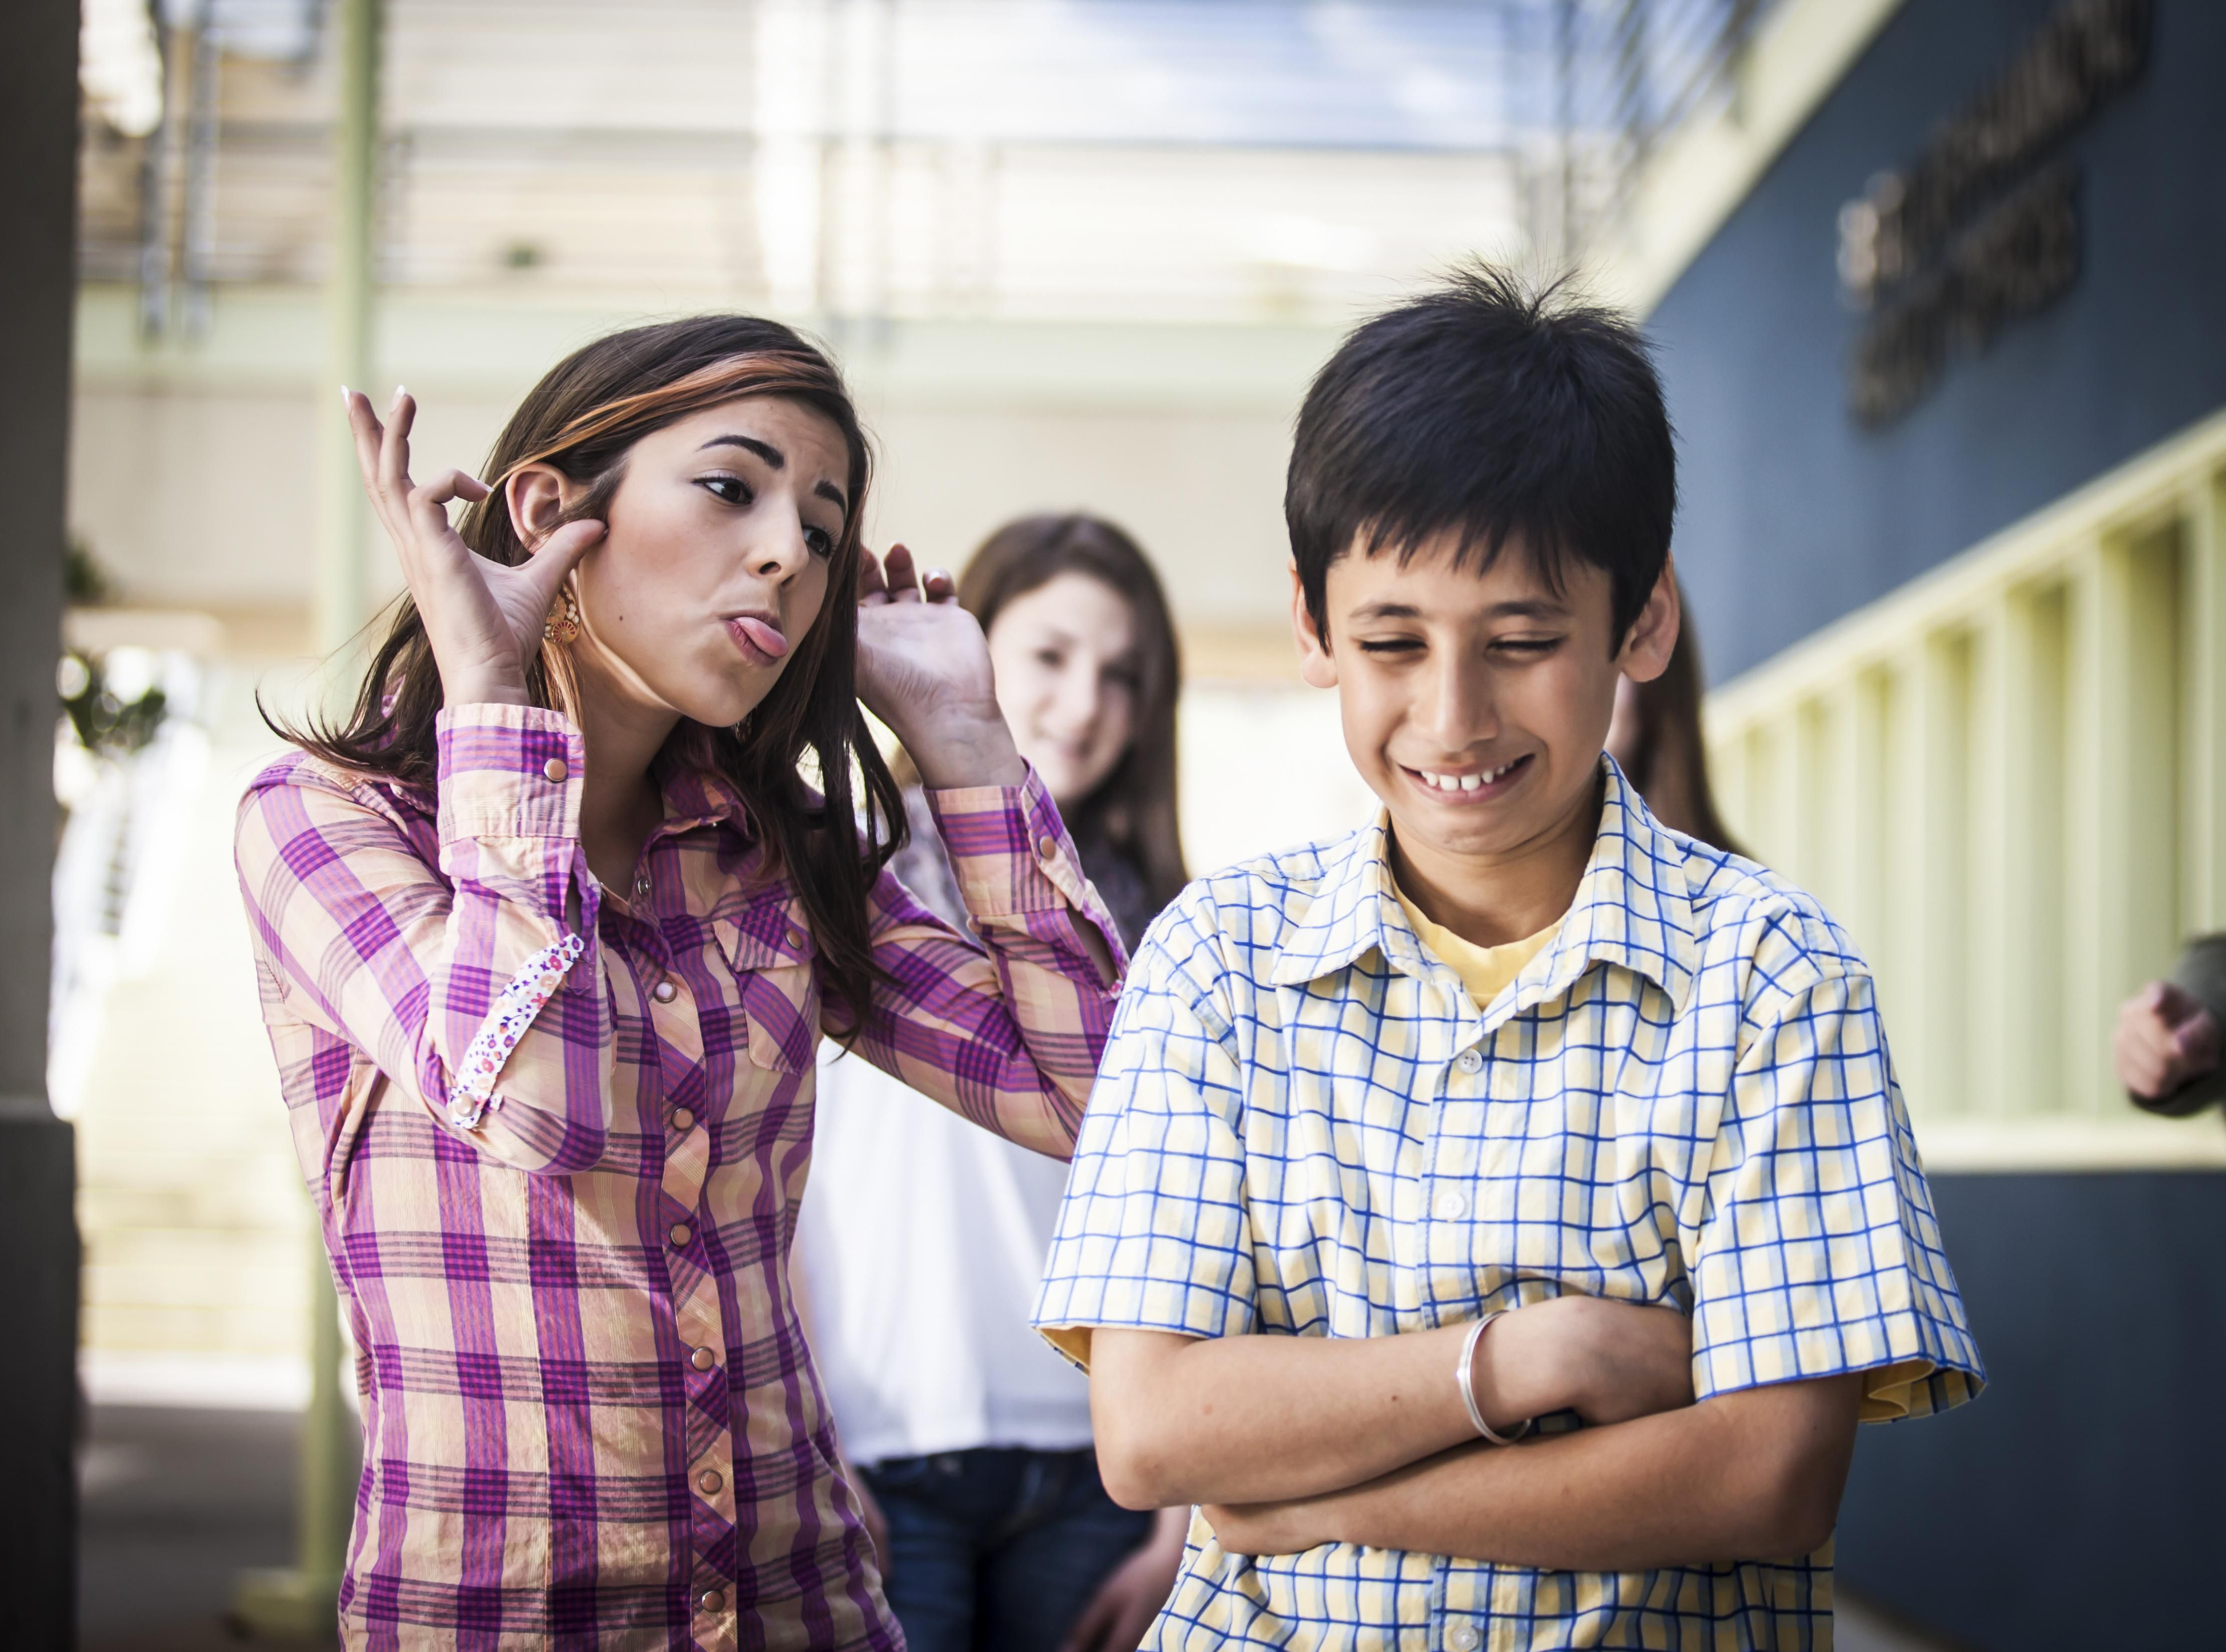 How Schools Should React To Reports Of Bullying